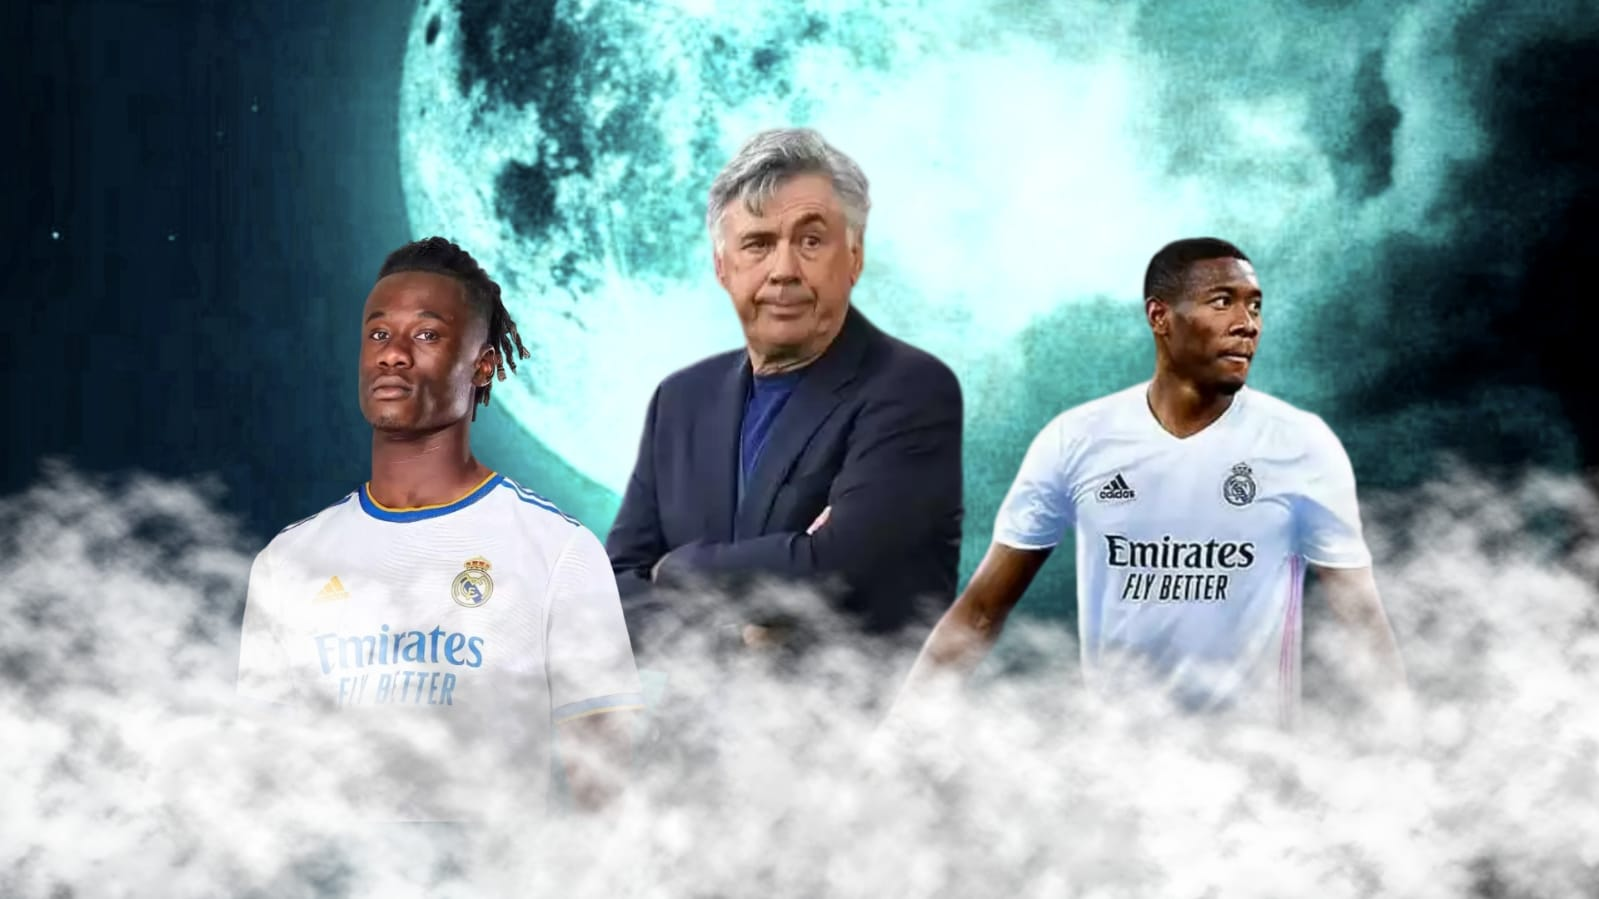 Real Madrid: Complete Overview